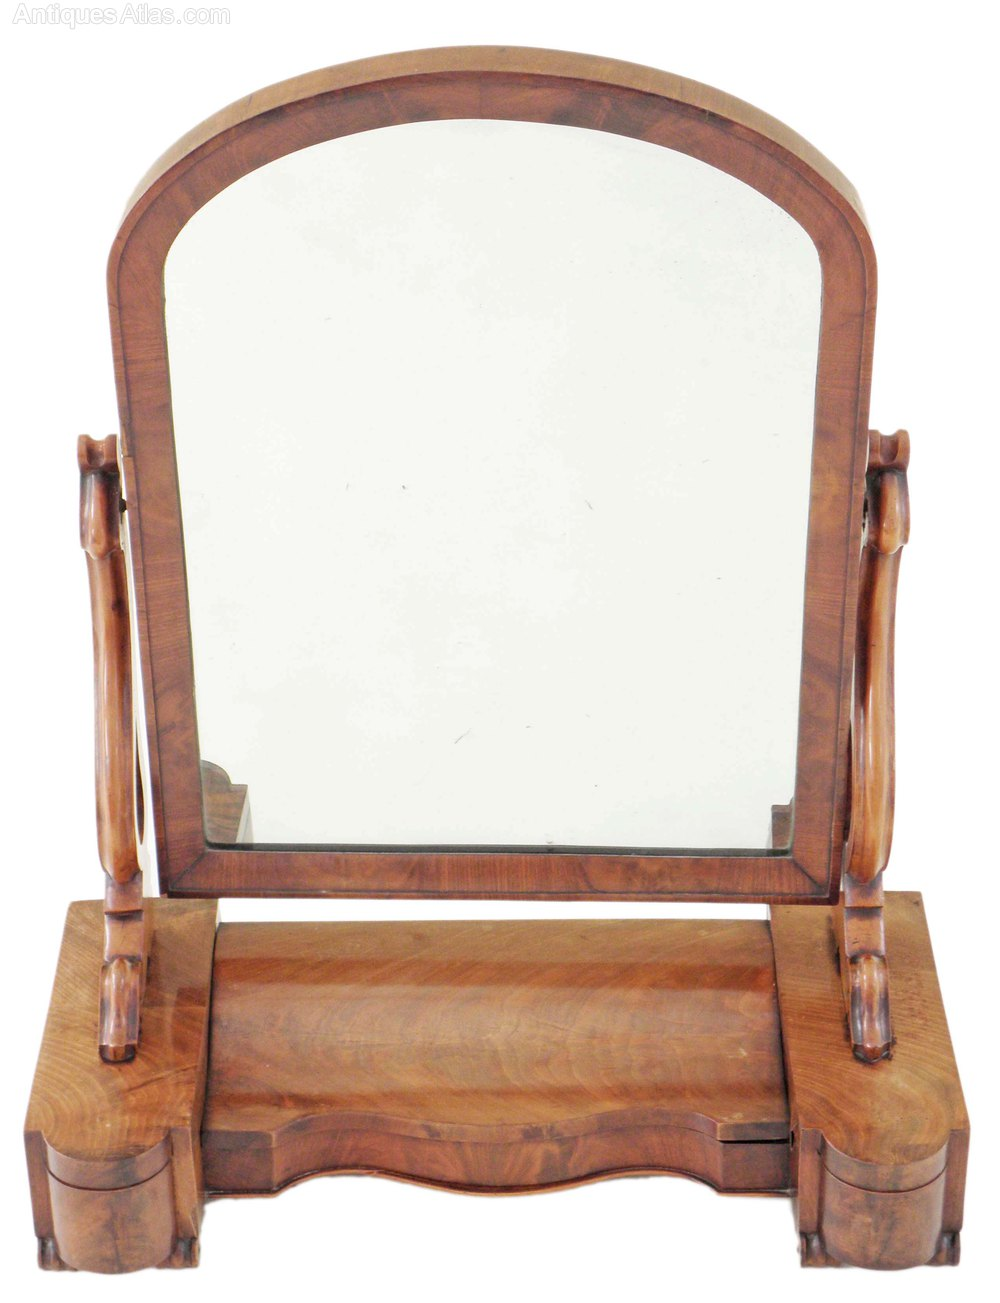 Antiques atlas victorian mahogany bedroom swing mirror for Victorian mirror